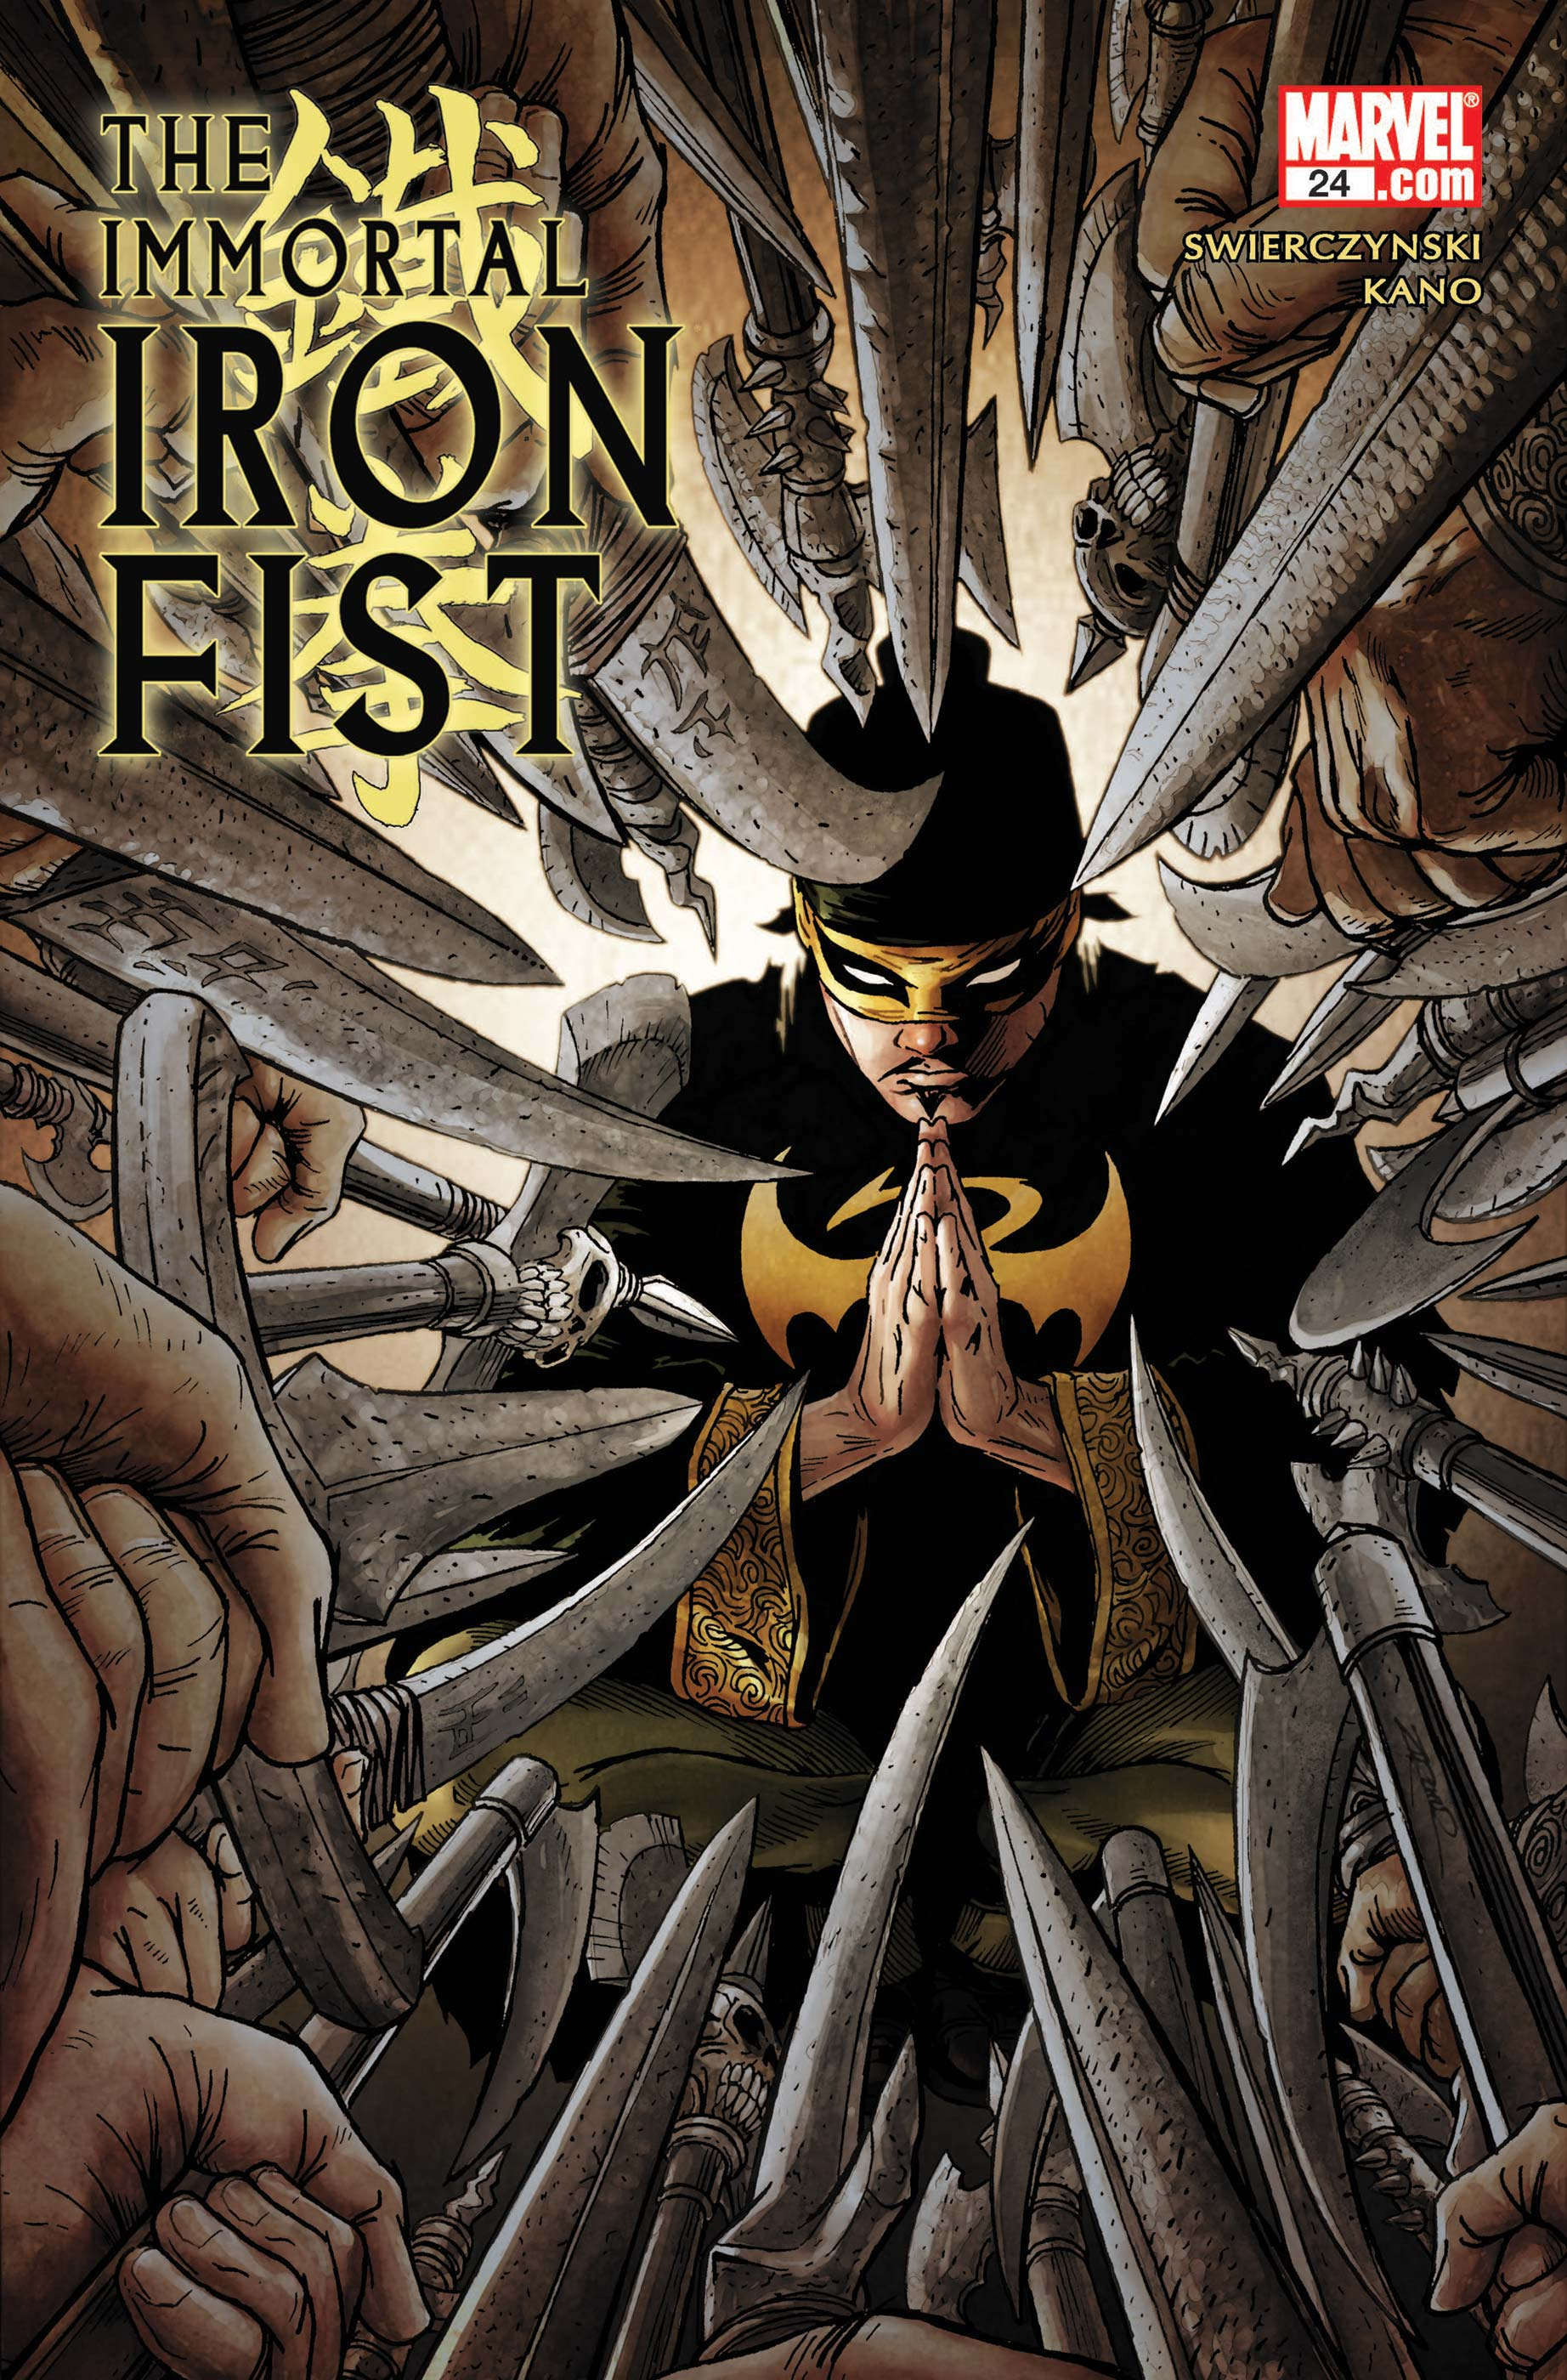 Immortal Iron Fist (2006) #24